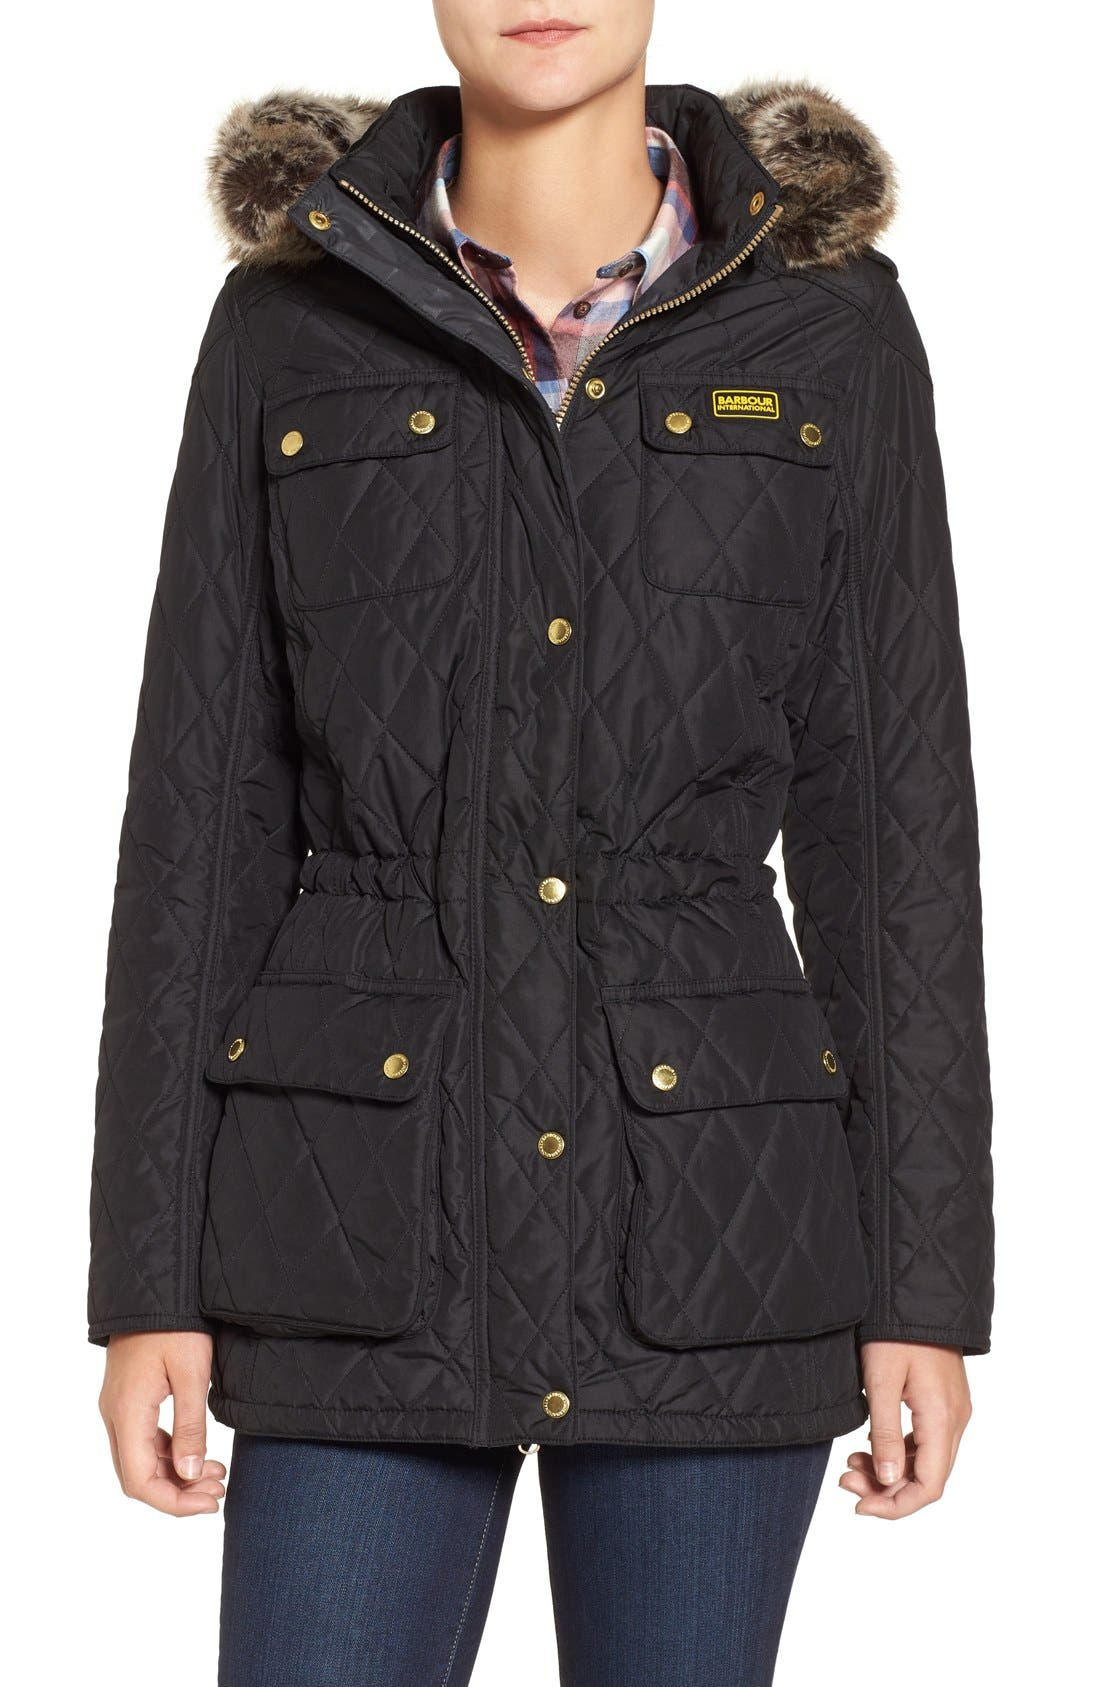 Main Image - Barbour International Enduro Quilted Jacket with Faux Fur Trim Hood